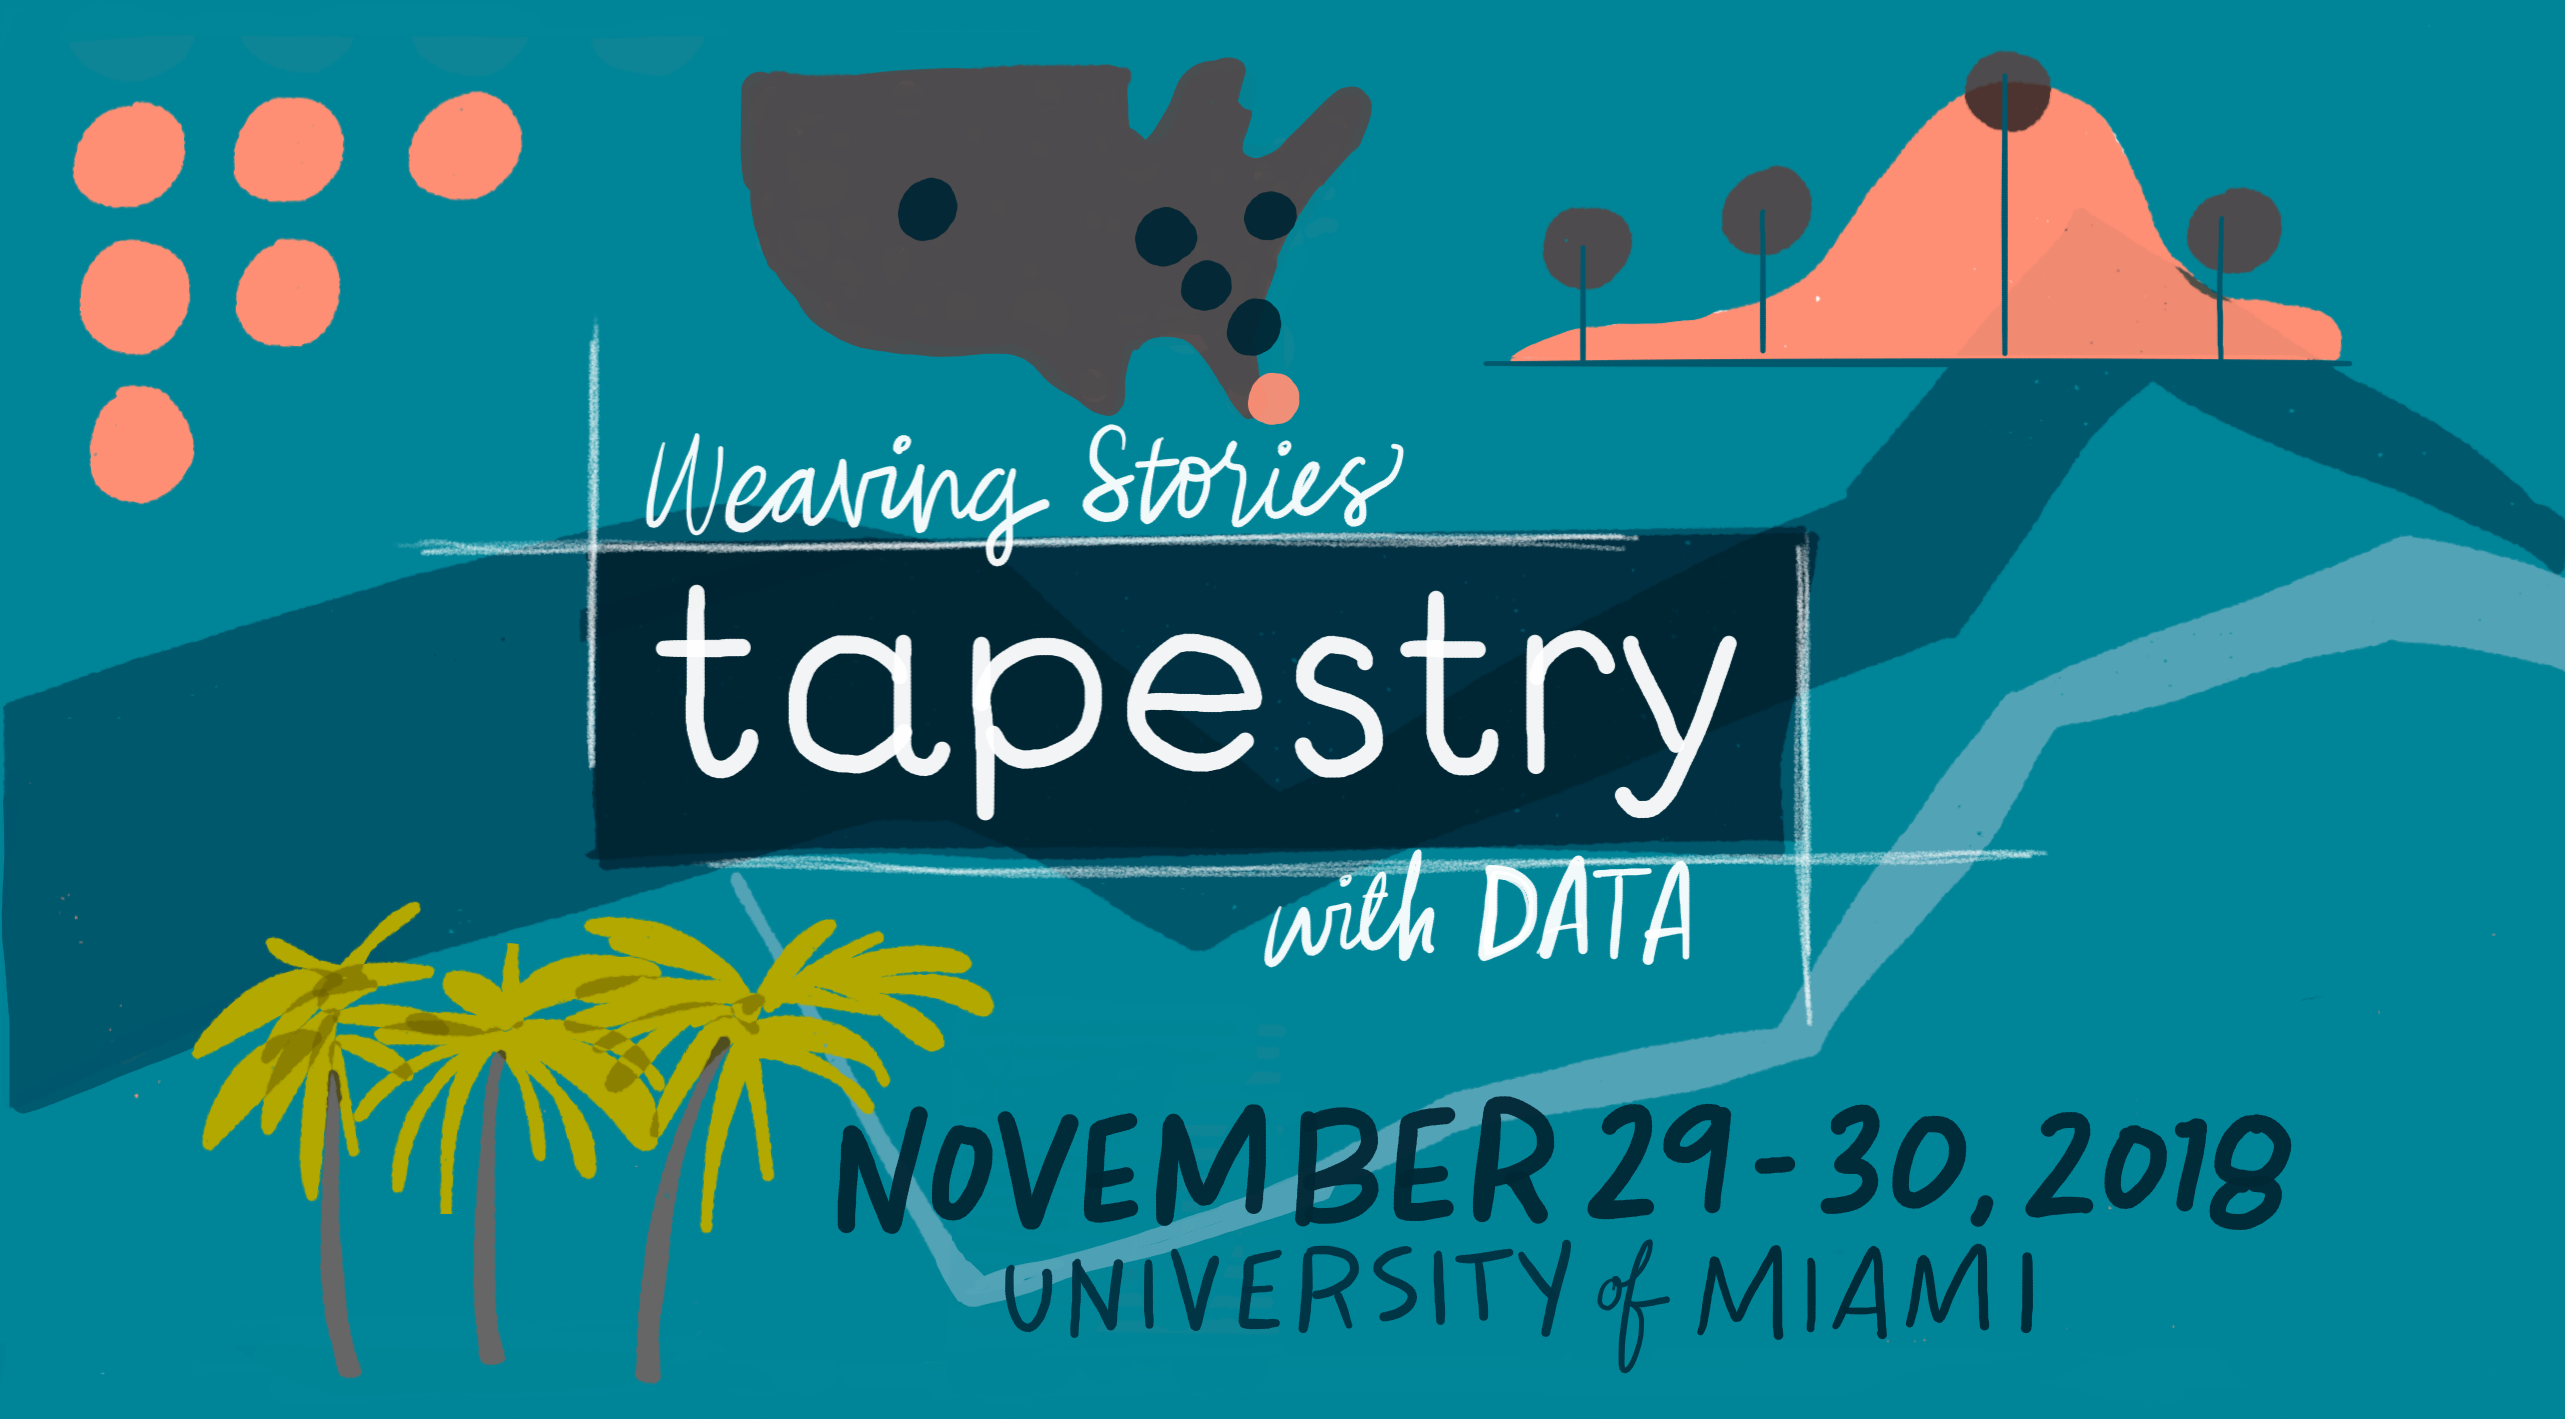 Tapestry 2018 Program, Call for Demos